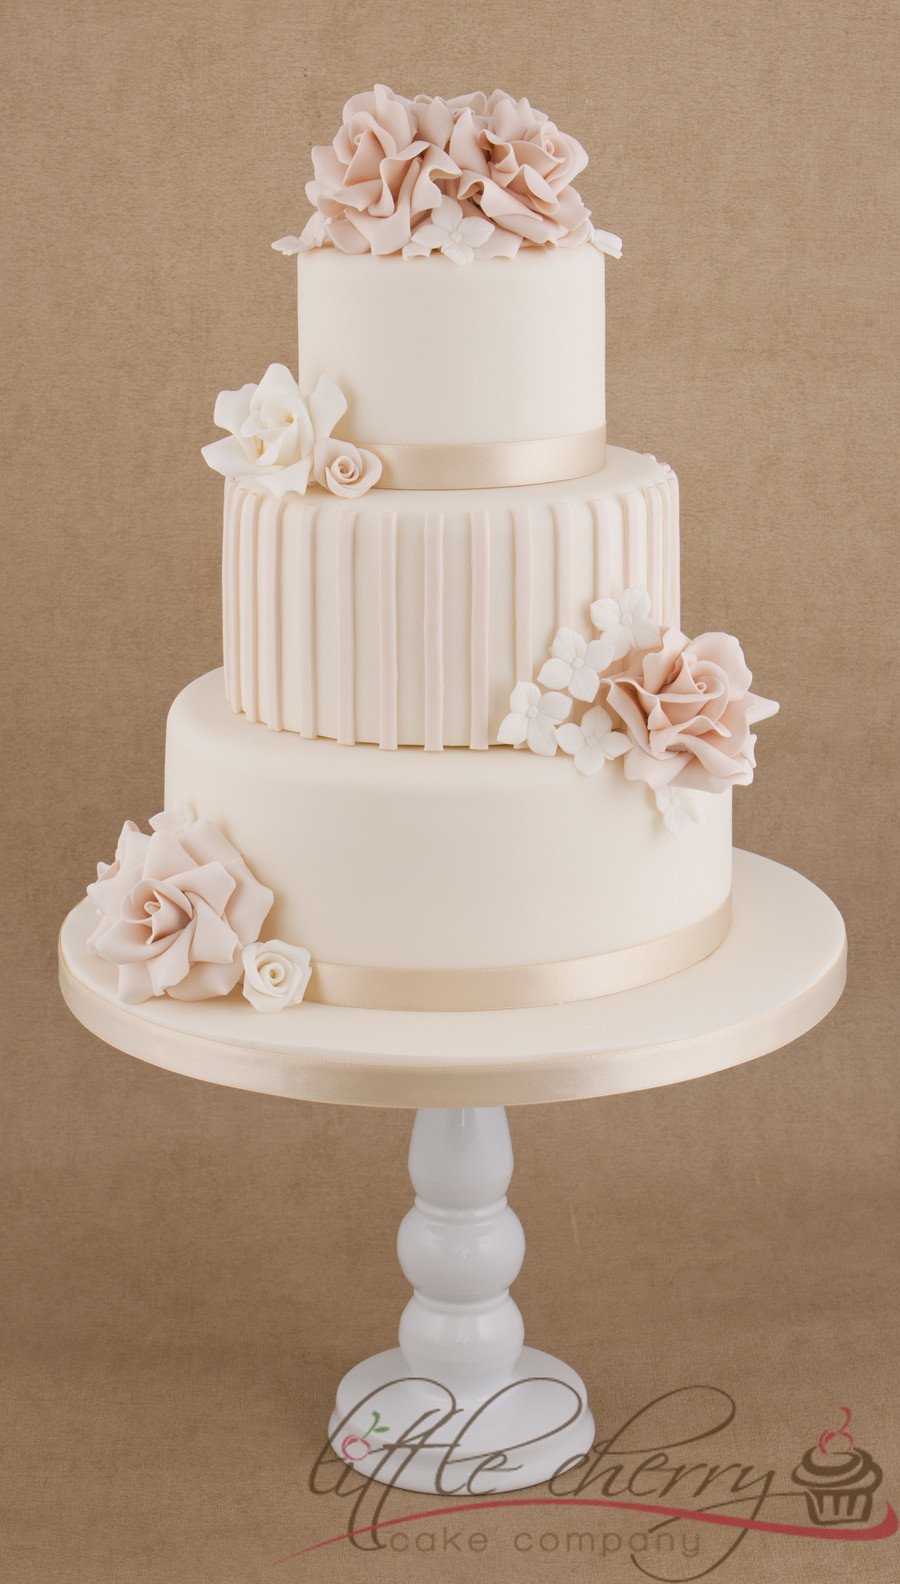 3 Layer Wedding Cakes  Roses And Stripes 3 Tier Wedding Cake CakeCentral